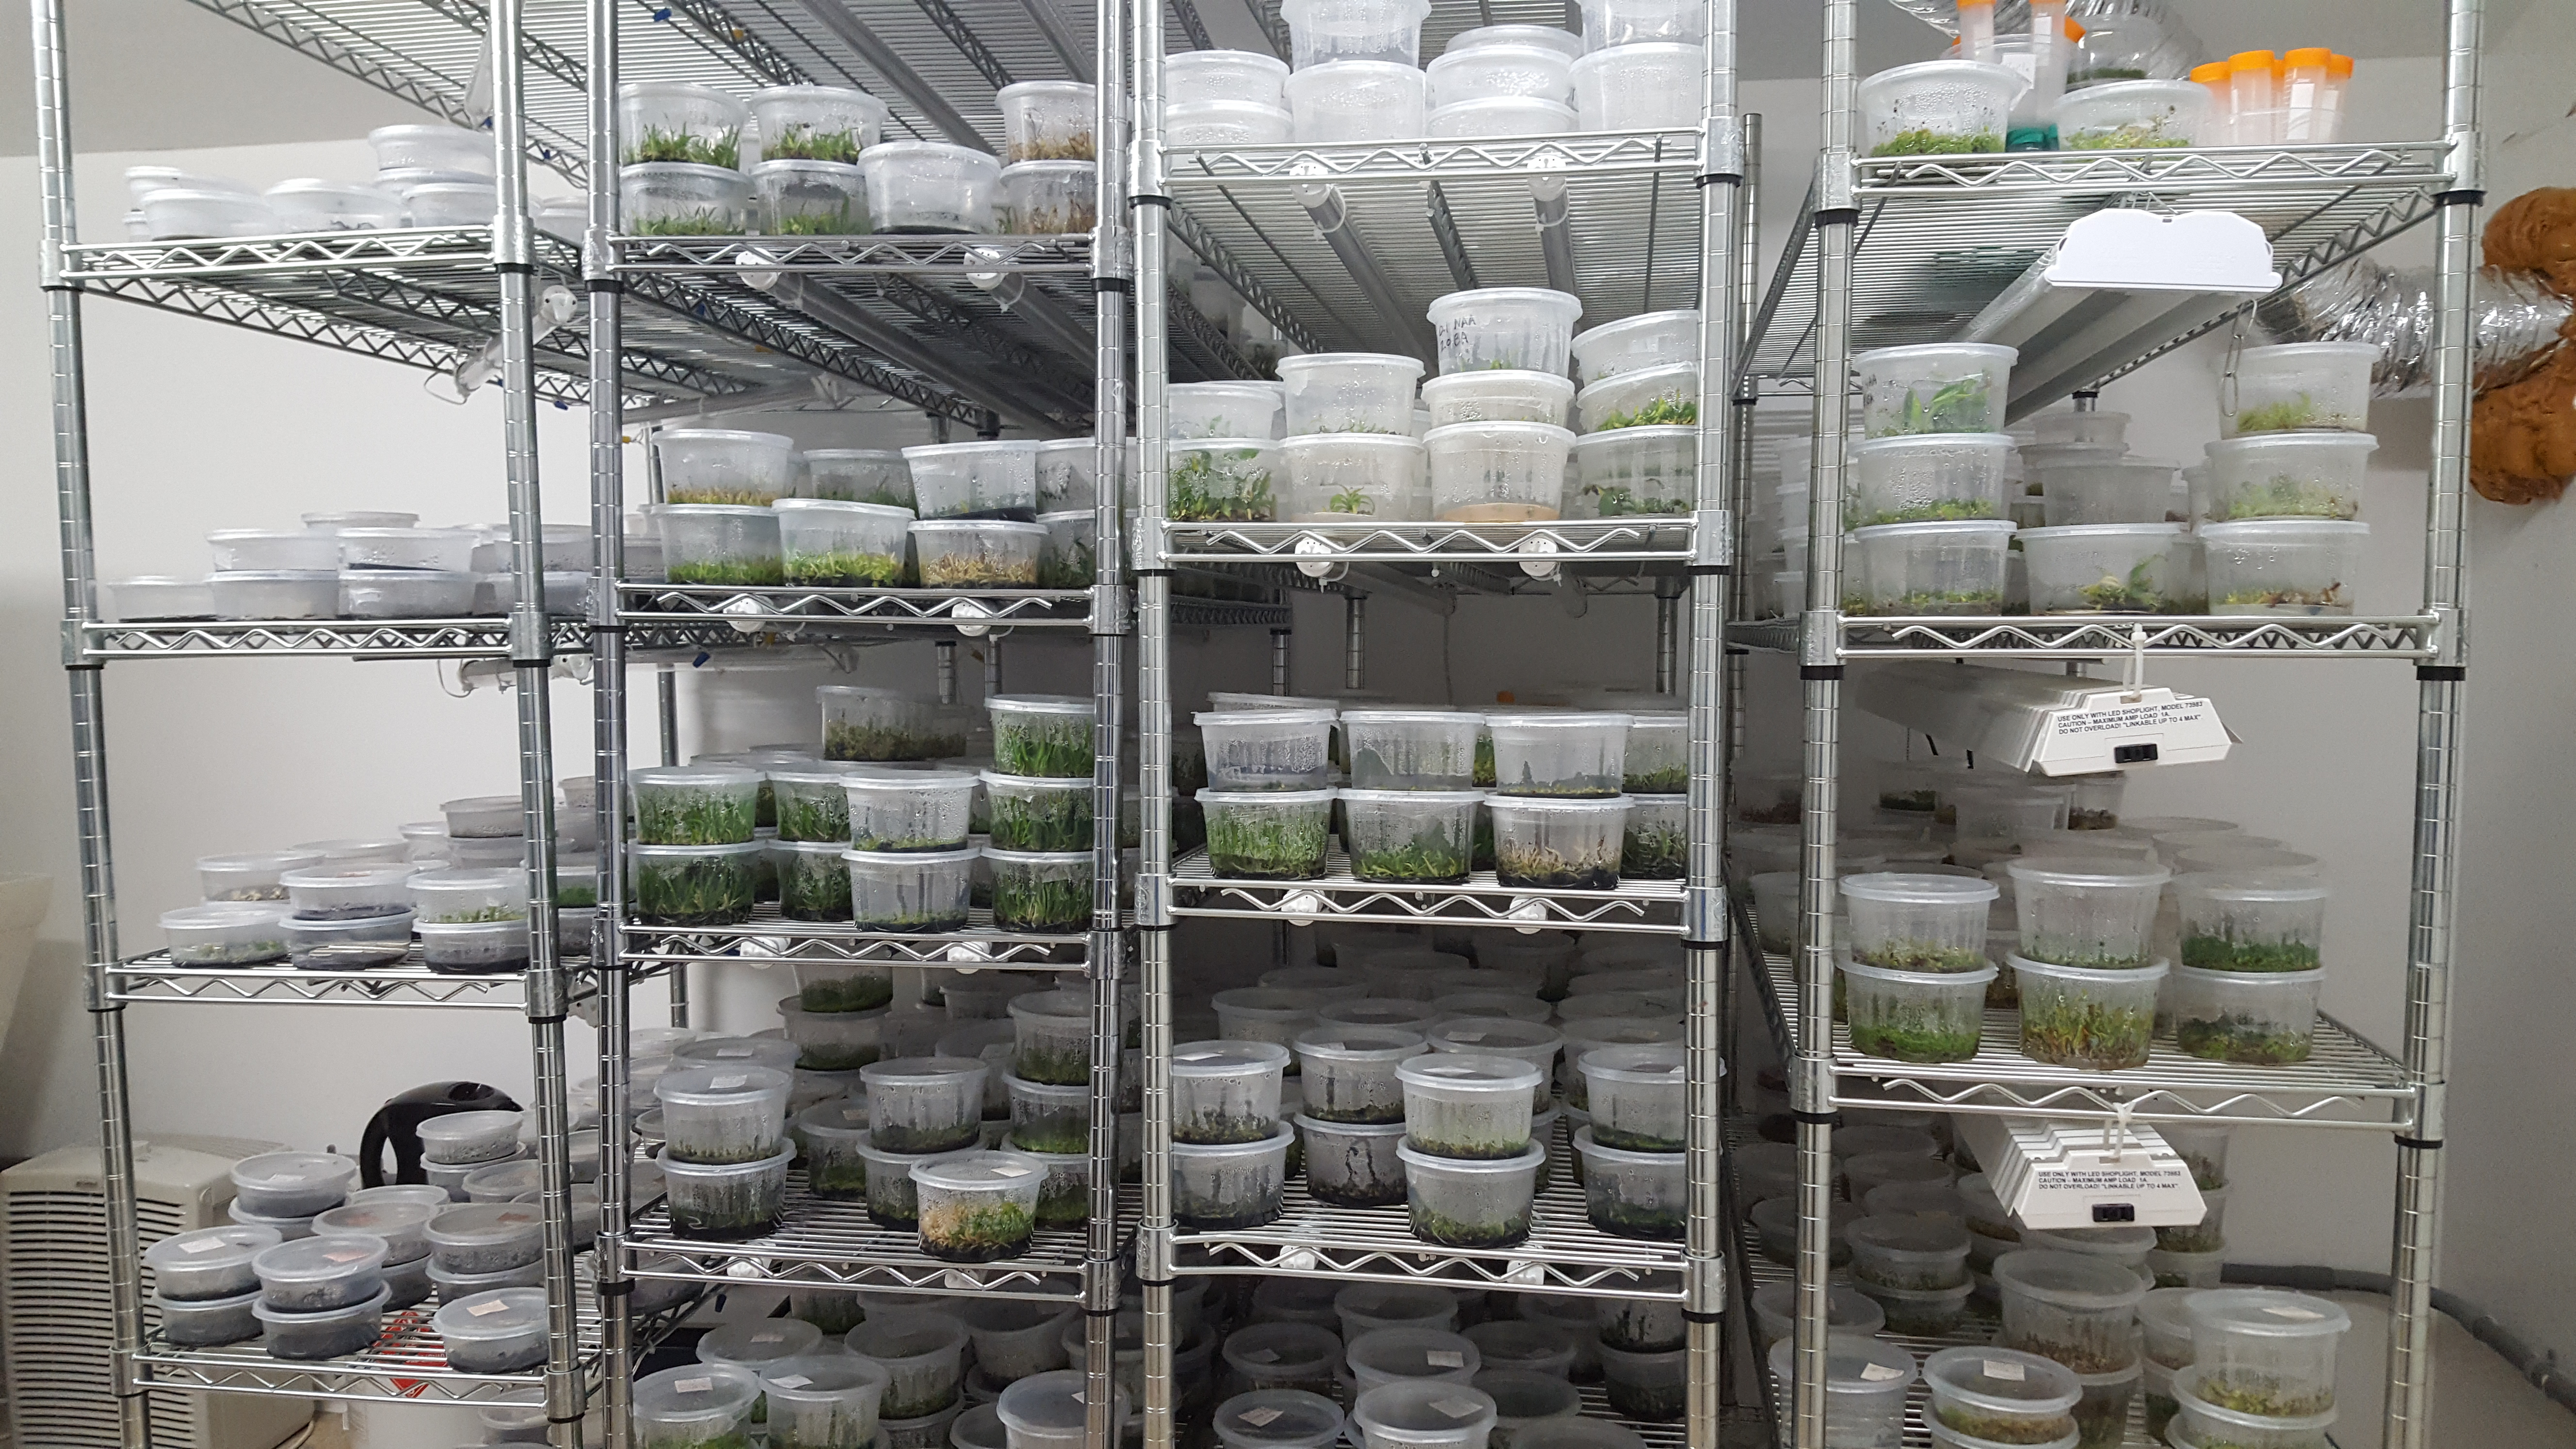 Orchid and carnivorous plant Seed propagation lab